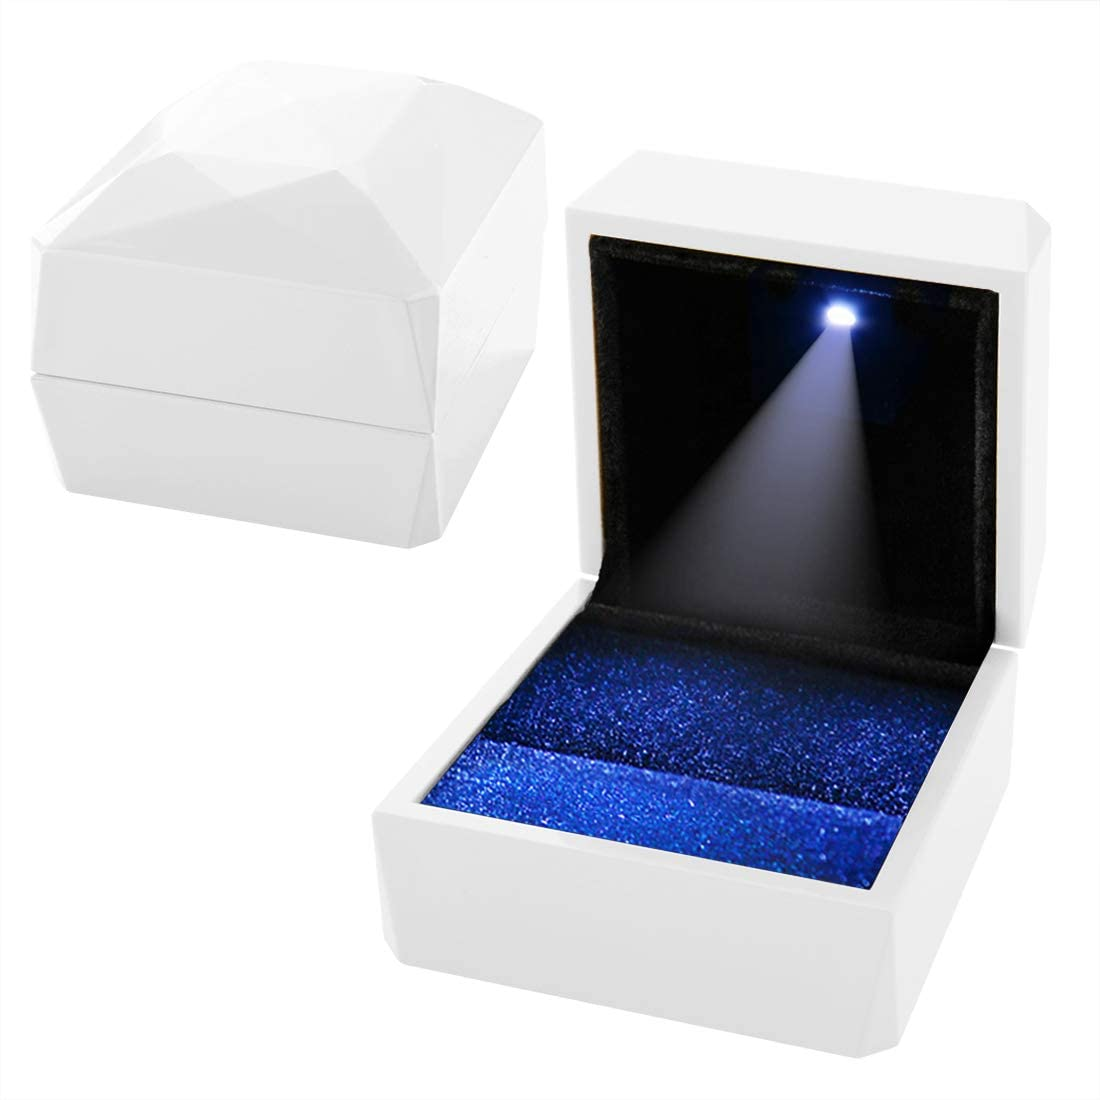 CHRUNONE Led Ring Box for Proposal, White Engagement Ring LED Light Ring Box Jewelry Gift Box, LED Light Jewelry Display Gift